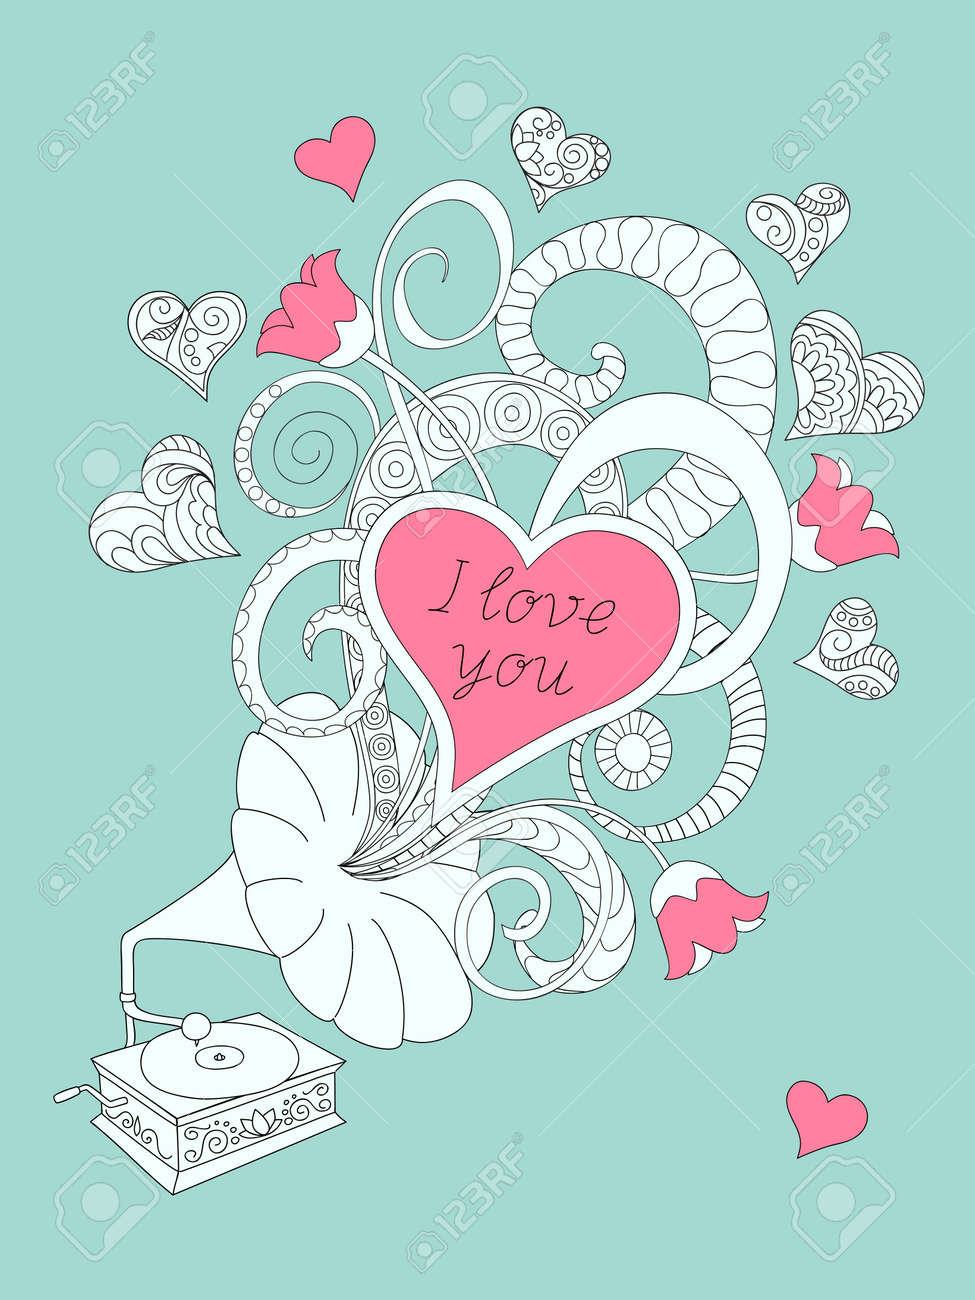 Festive romantic card with doodle drawing gramophone zen tangle festive romantic card with doodle drawing gramophone zen tangle shapes hearts text i stopboris Image collections